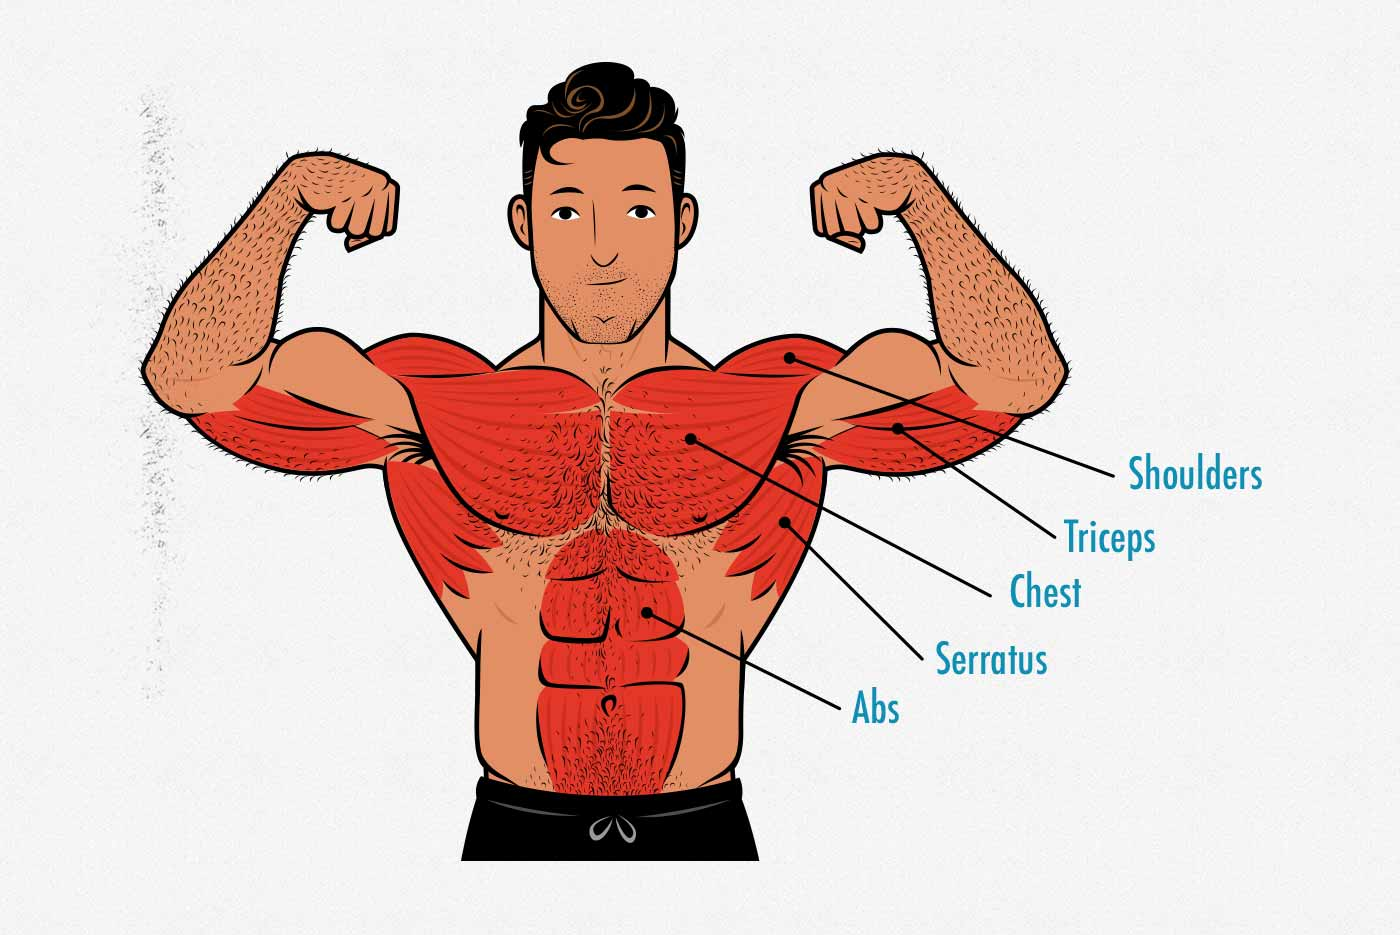 Diagram showing the anatomy and muscles worked by the push-up.